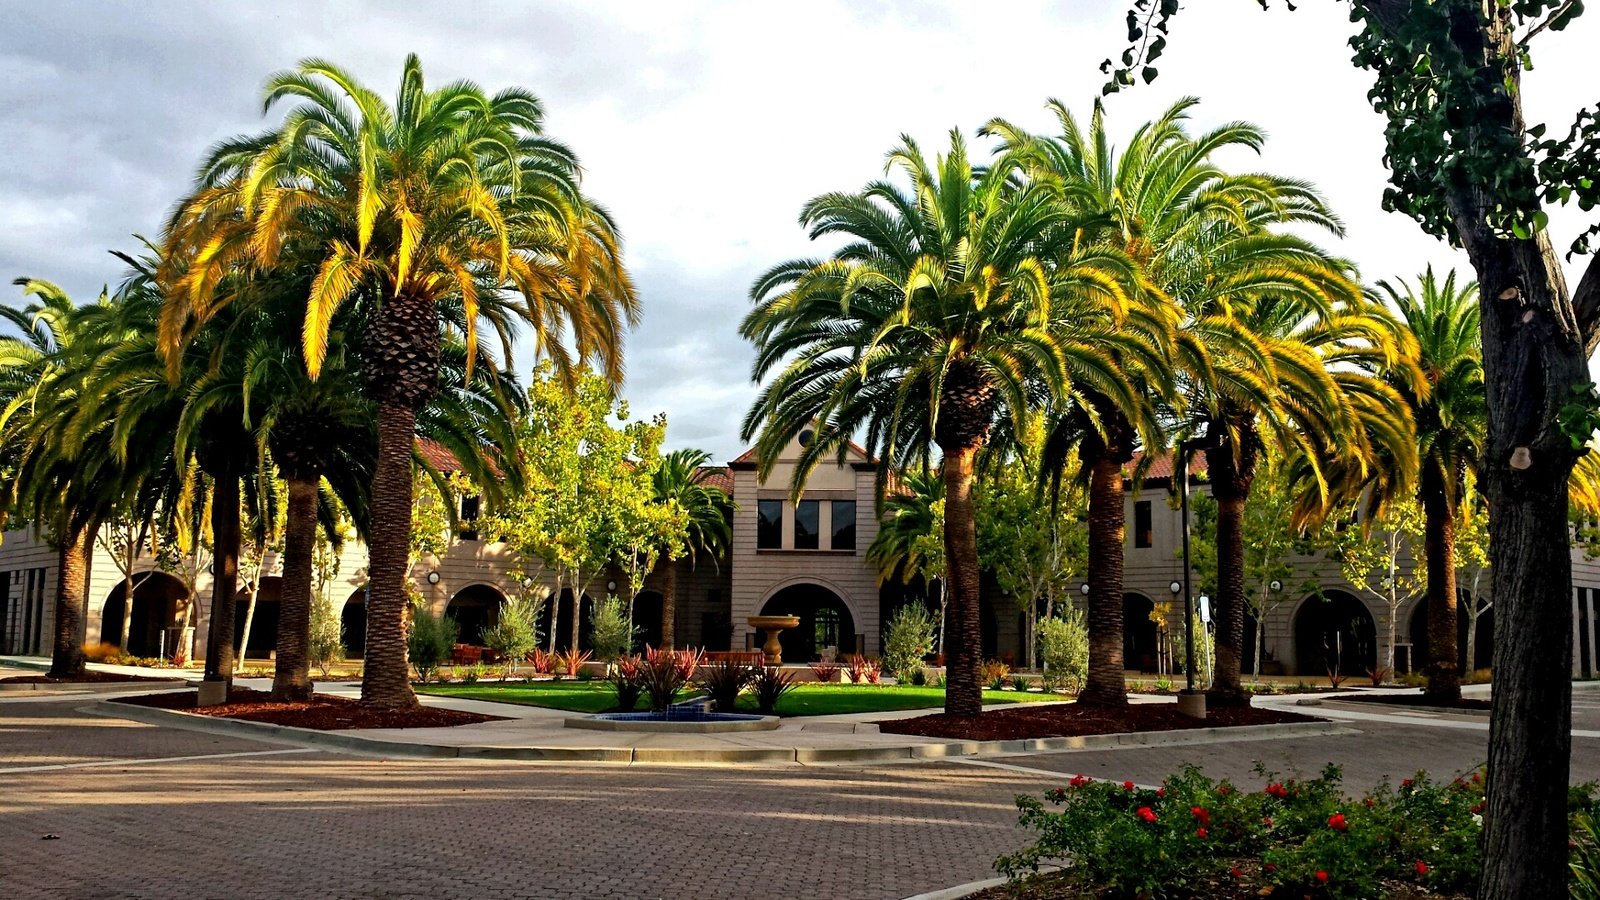 Research and Technology Center in Palo Alto, USA